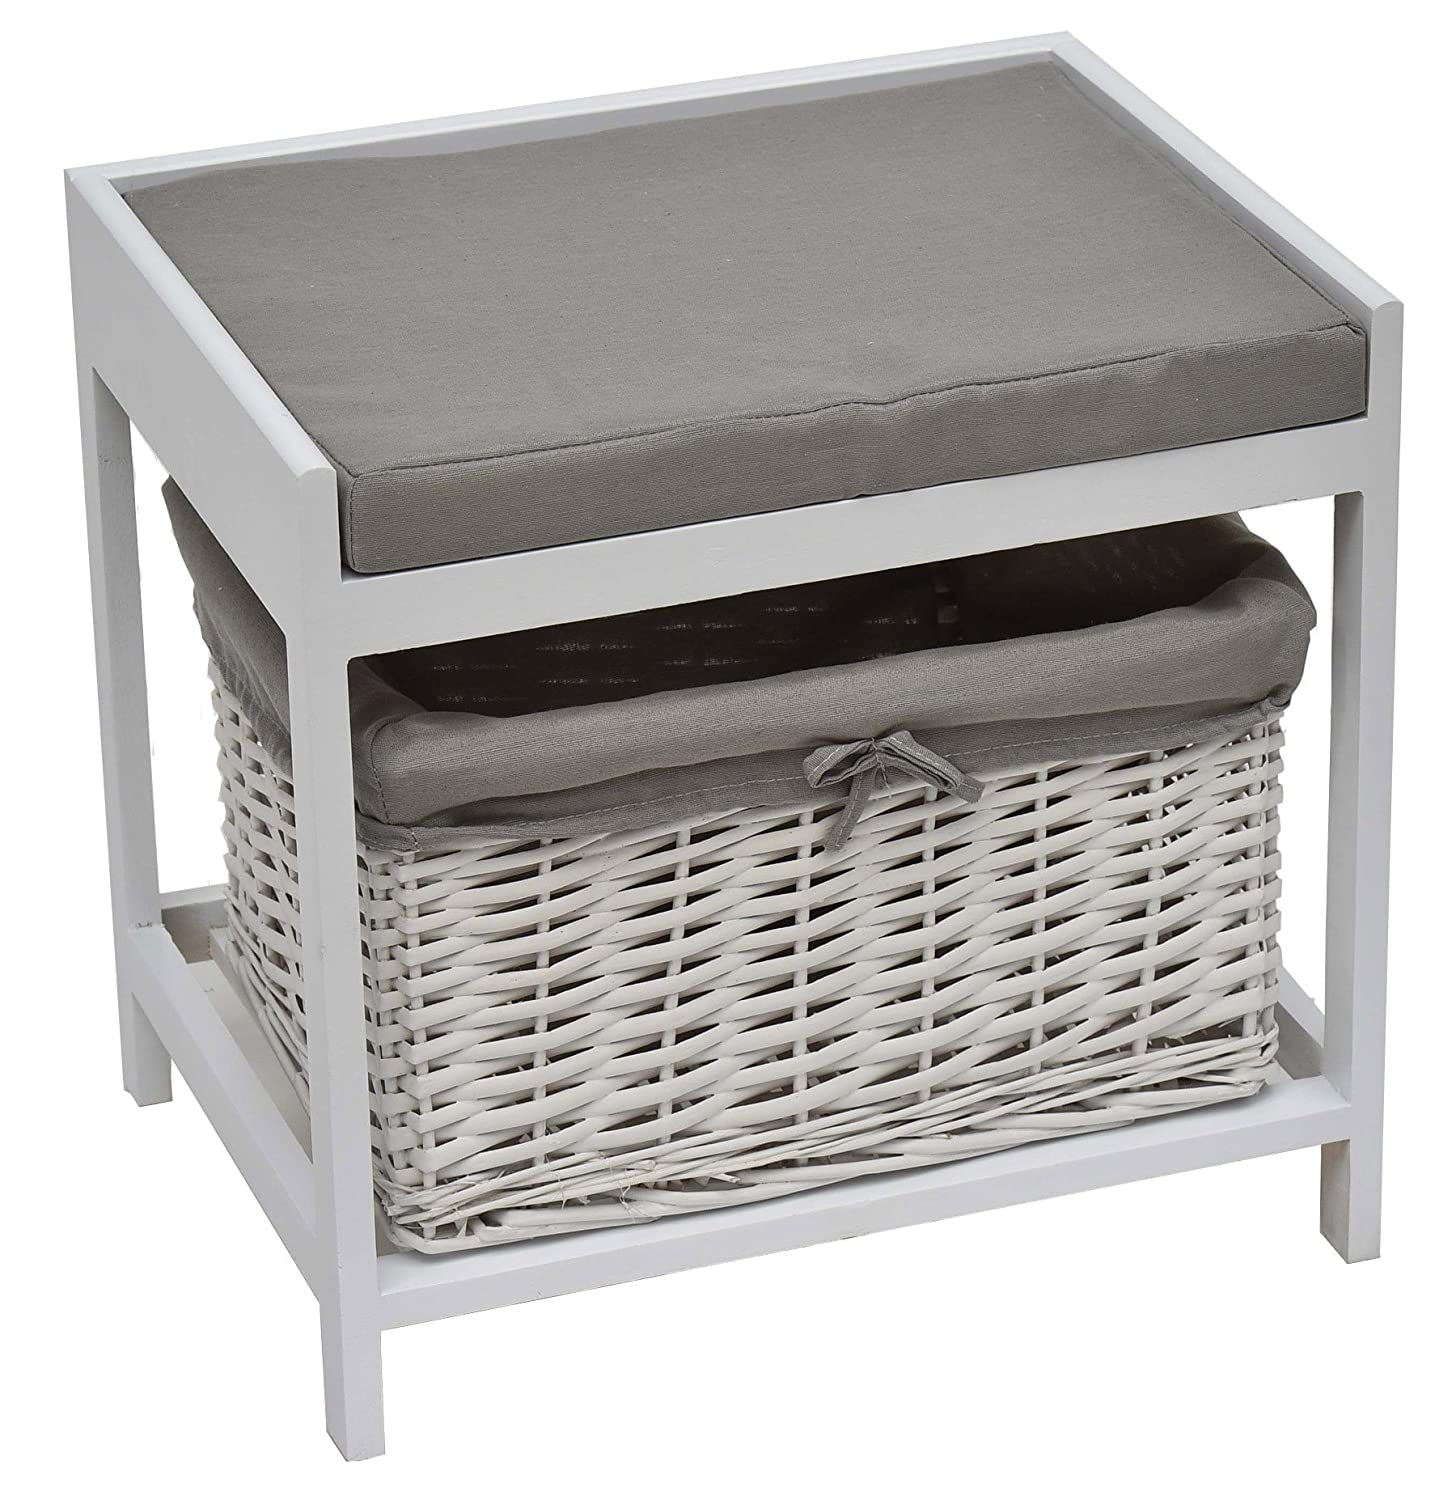 2 in 1 : Bathroom stool + storage basket - Charming design - Colour GREY and WHITE TENDANCE 9645208